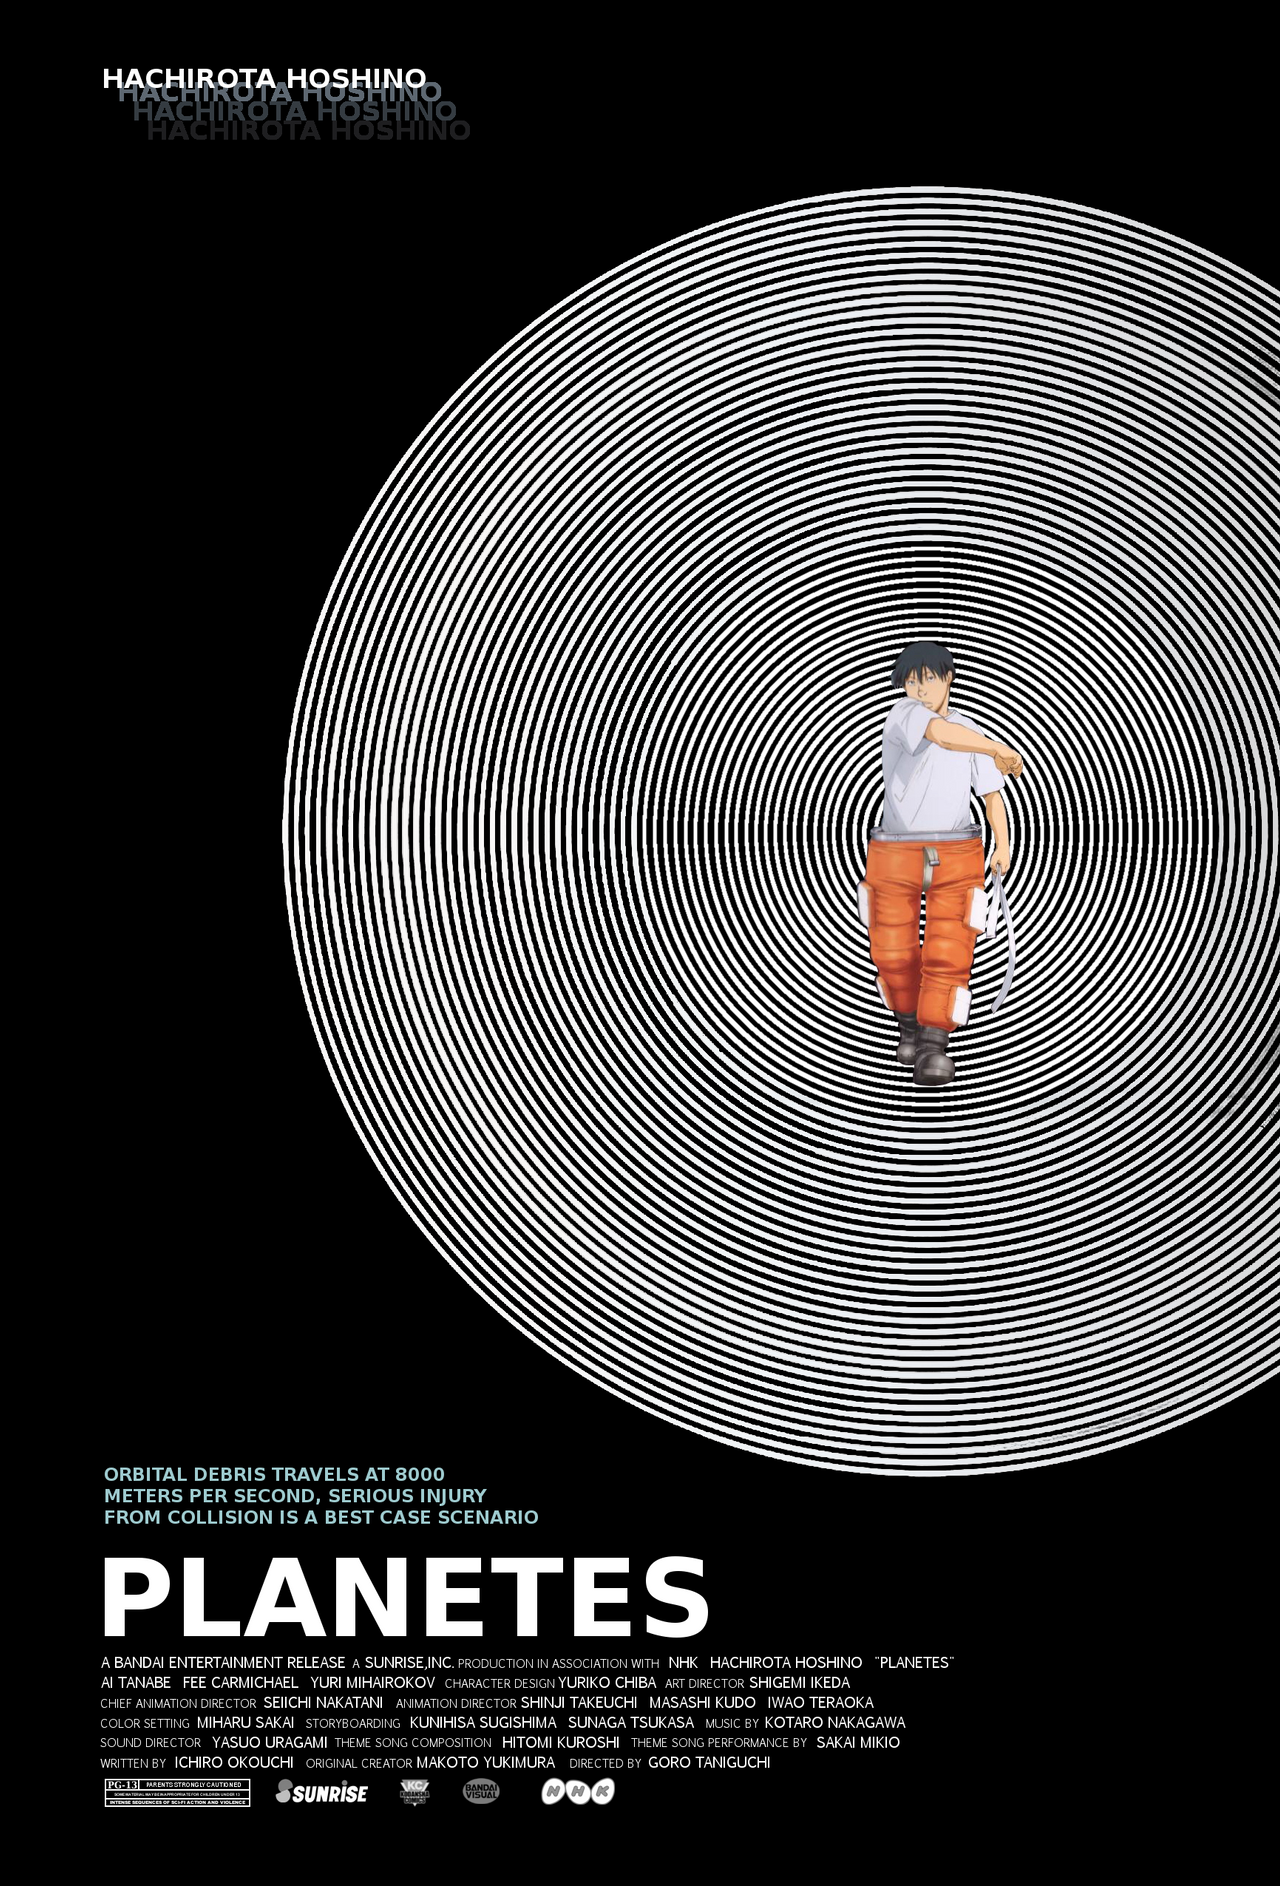 Planetes Movie Poster by ti7503 on DeviantArt